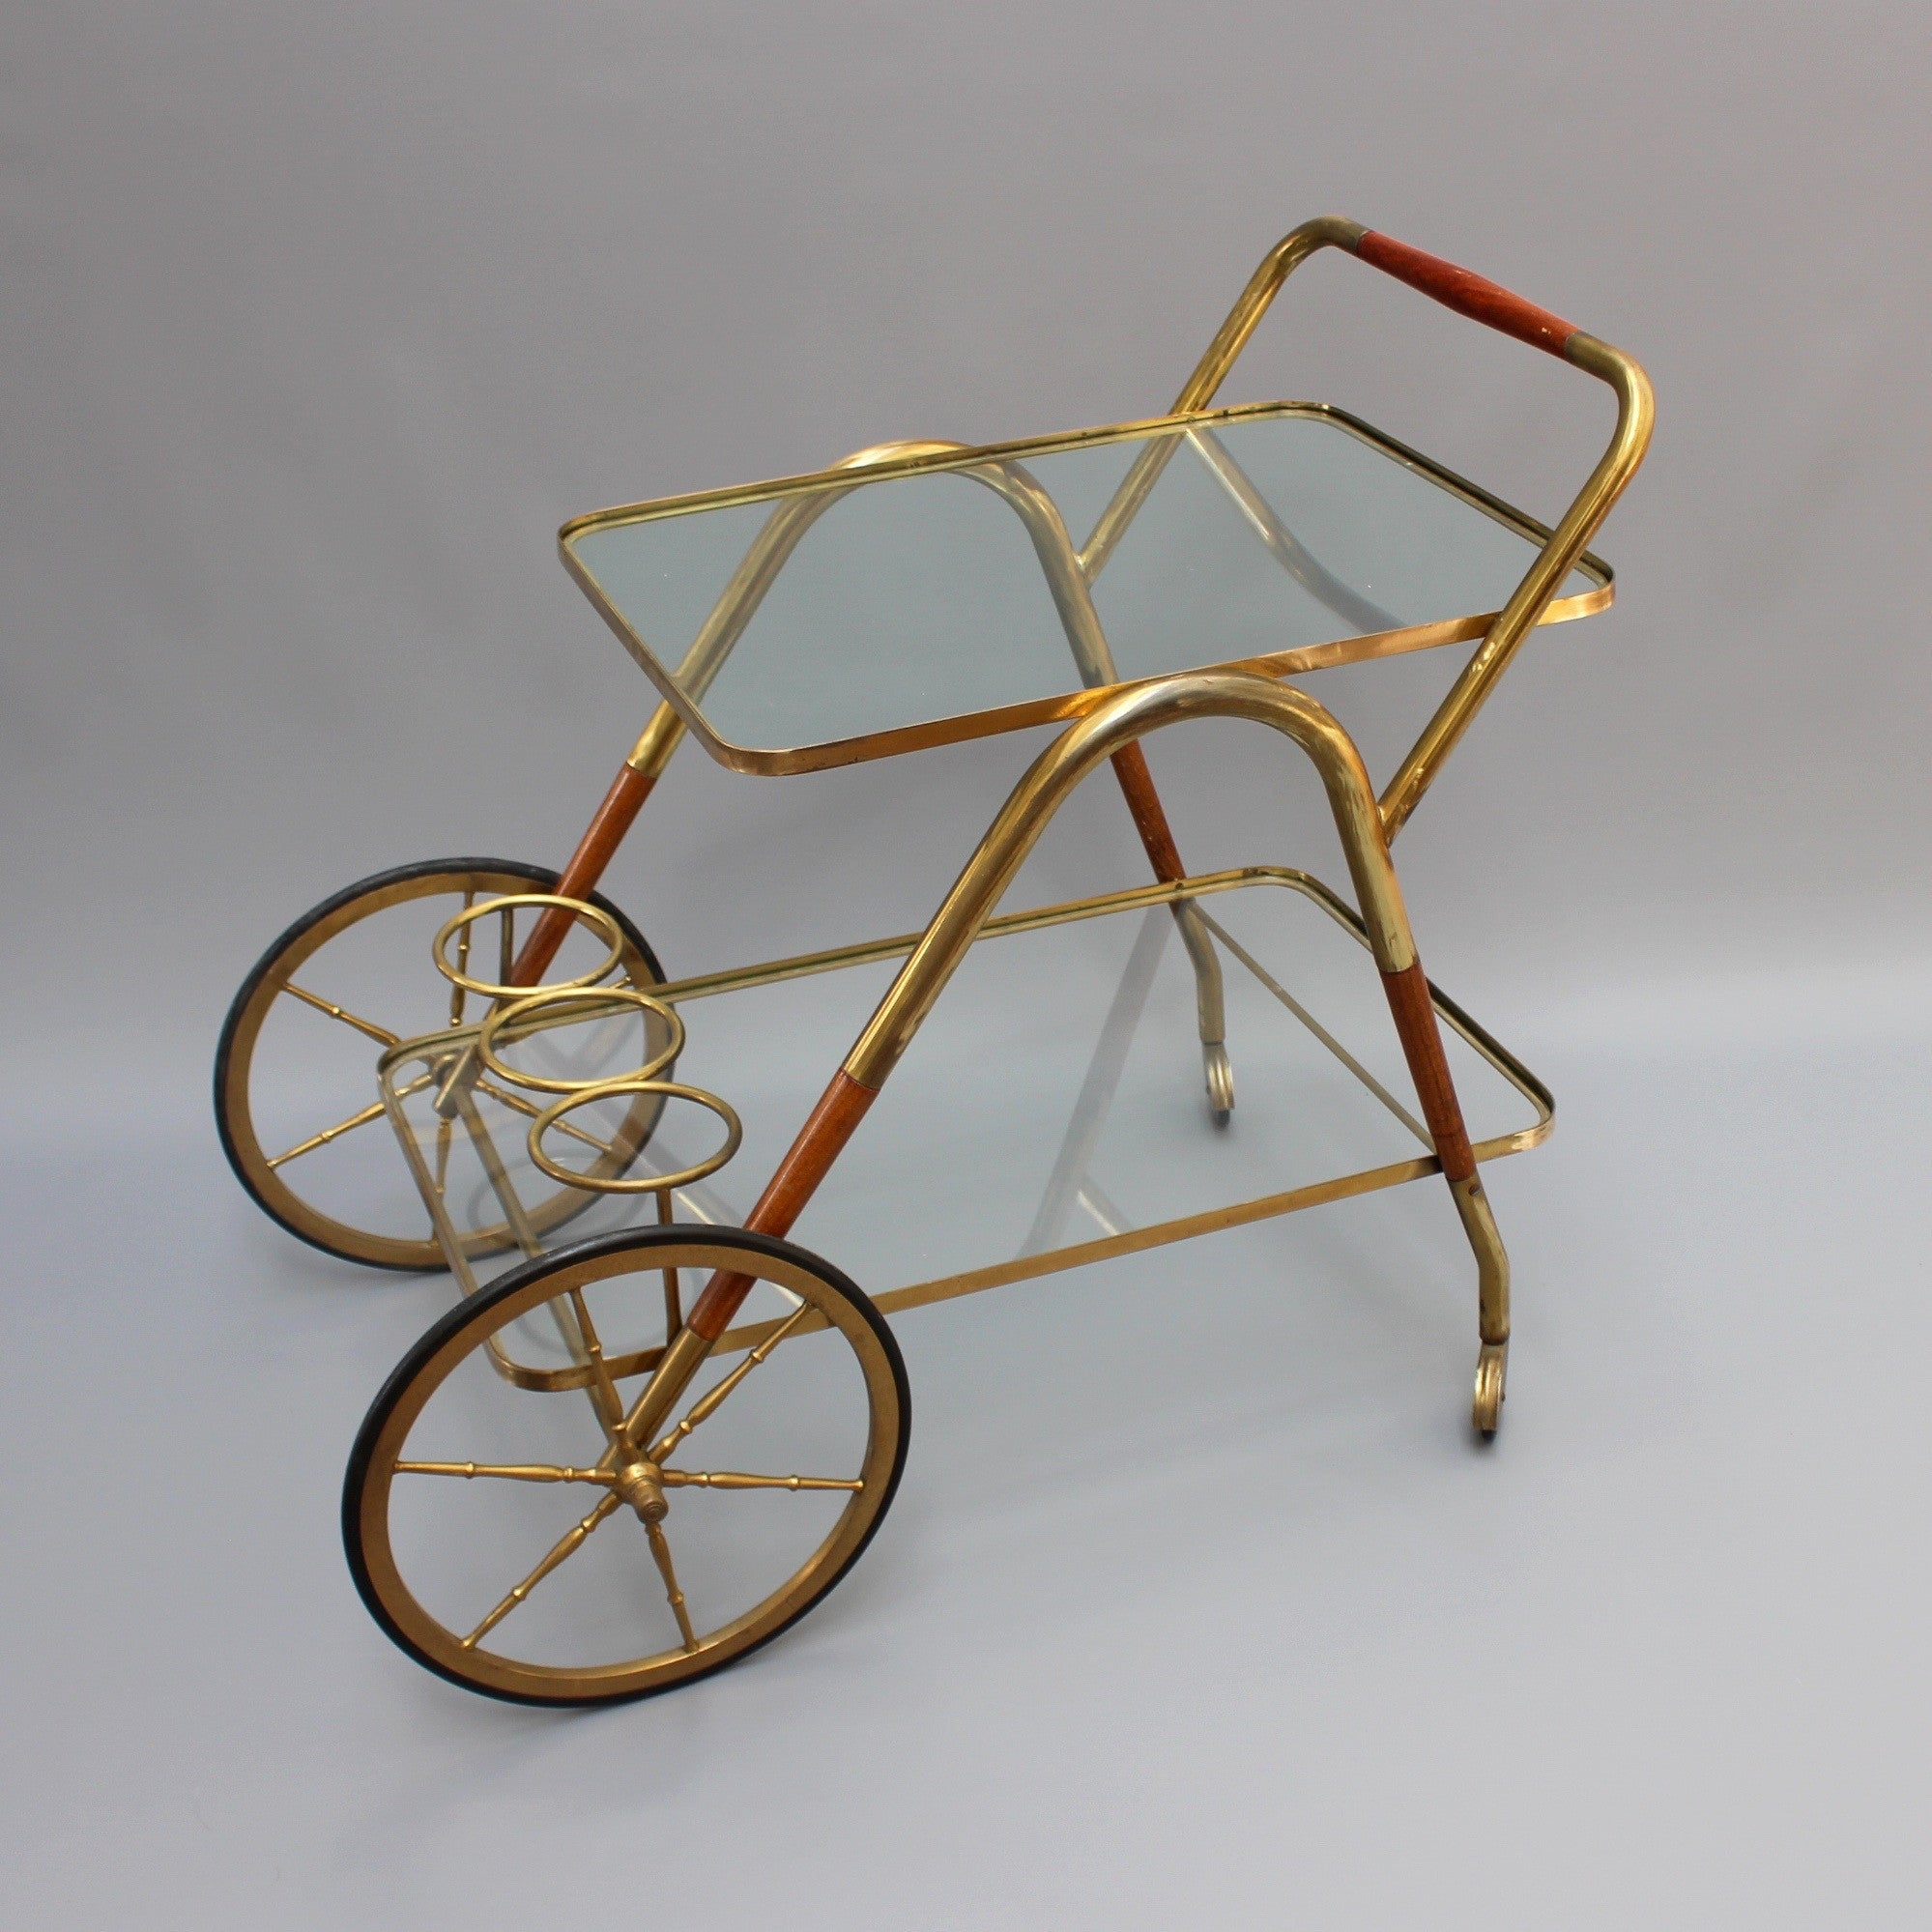 Brass Serving Trolley with Wood Trim by Cesare Lacca (c. 1950s)